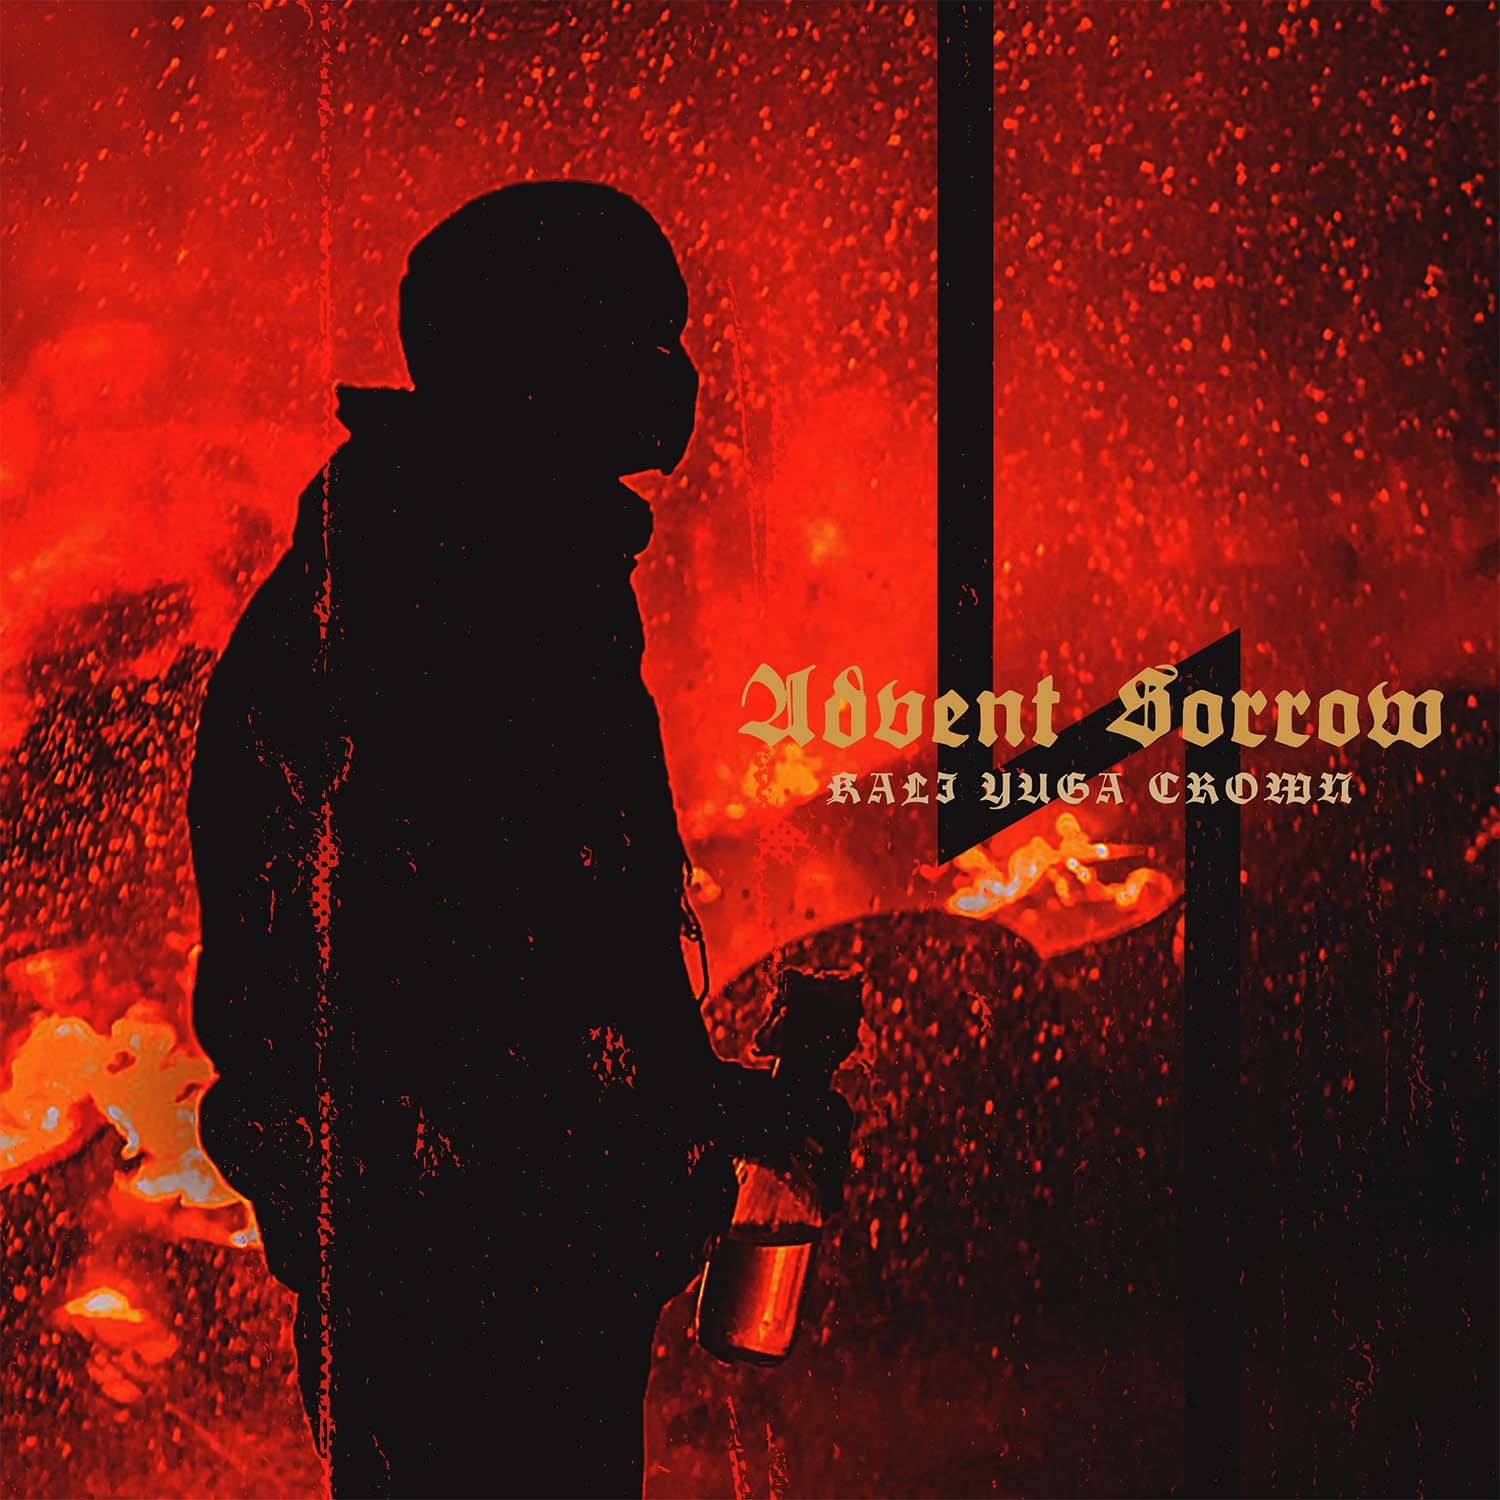 Advent Sorrow - Kali Yuga Crown 01